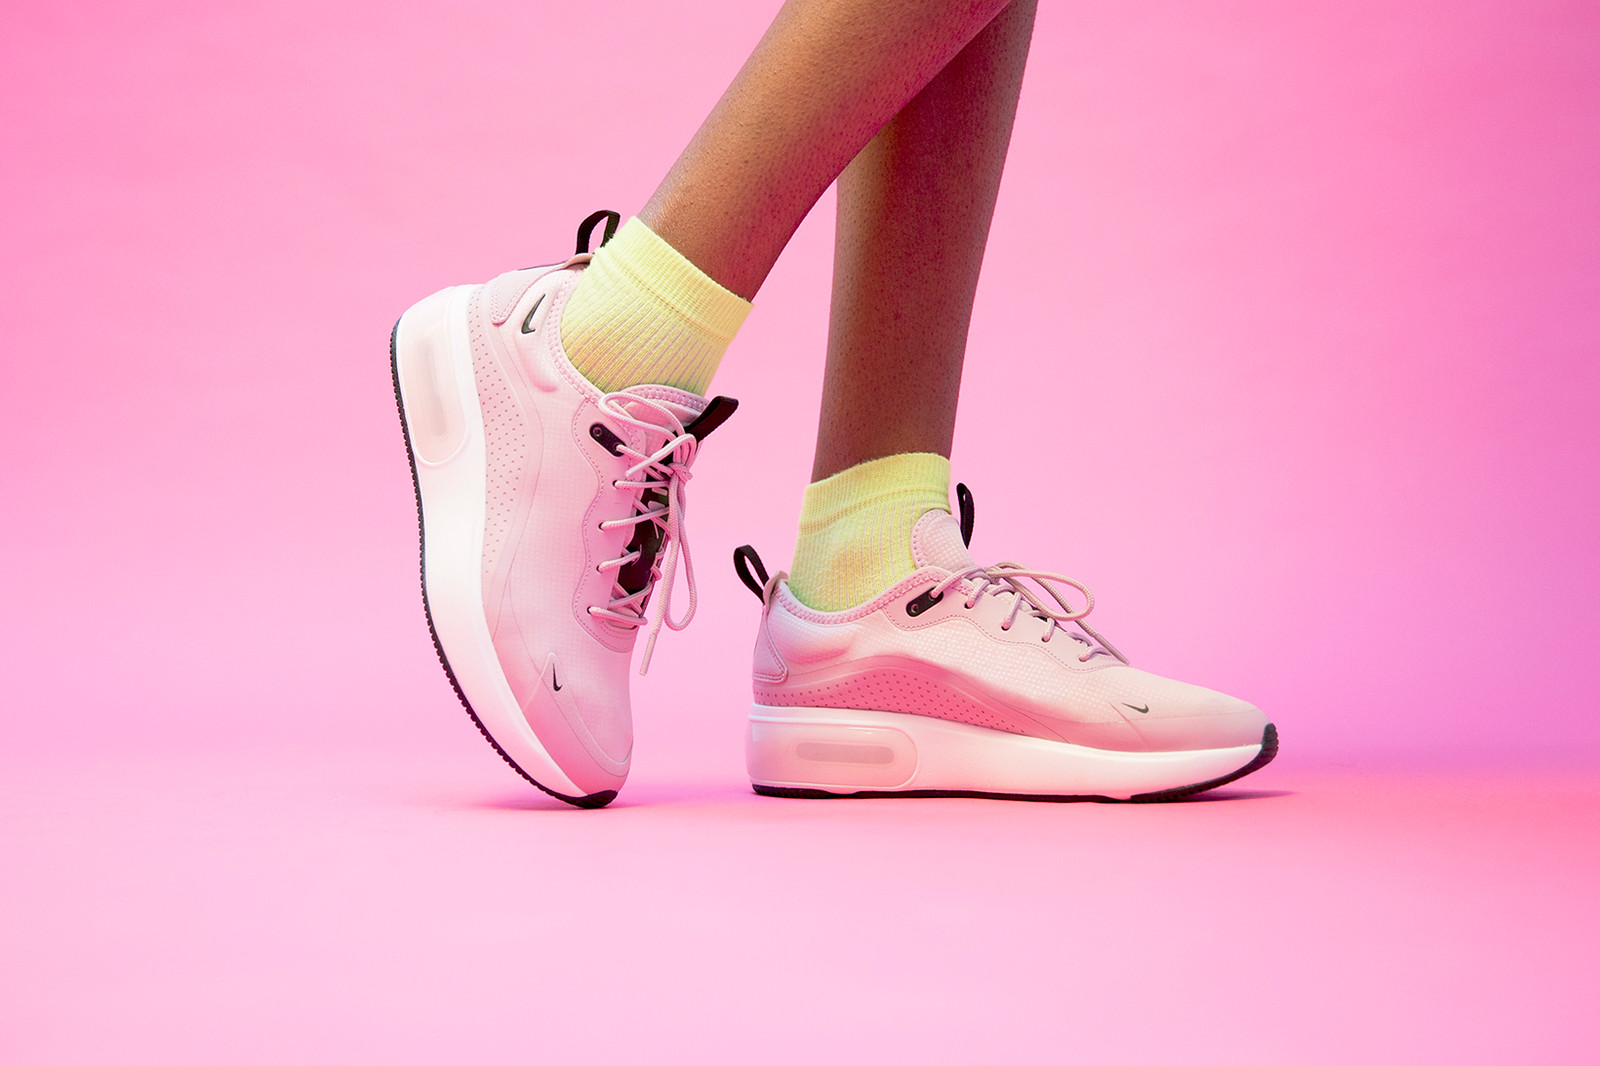 size 40 9f73a 4e362 Nike Air Max Dia Interactive Styling Film Barabara Malewicz Paris Colorways